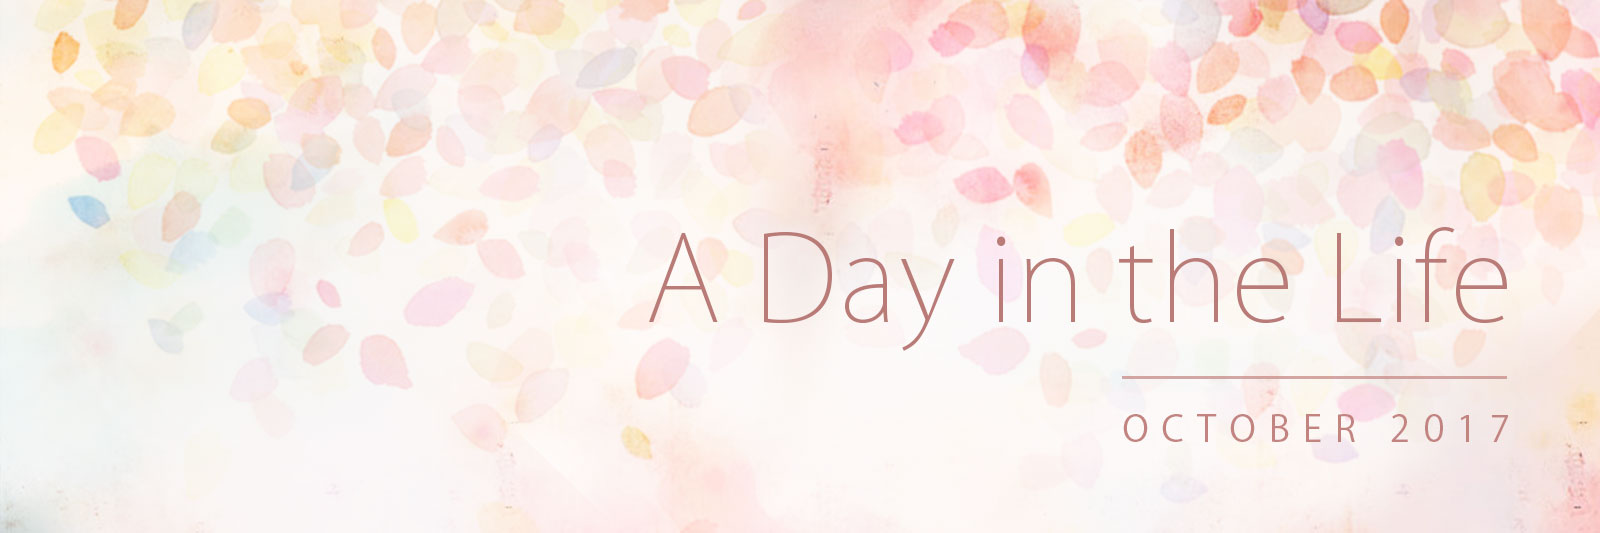 Banner for 'A Day in the Life': October 2017